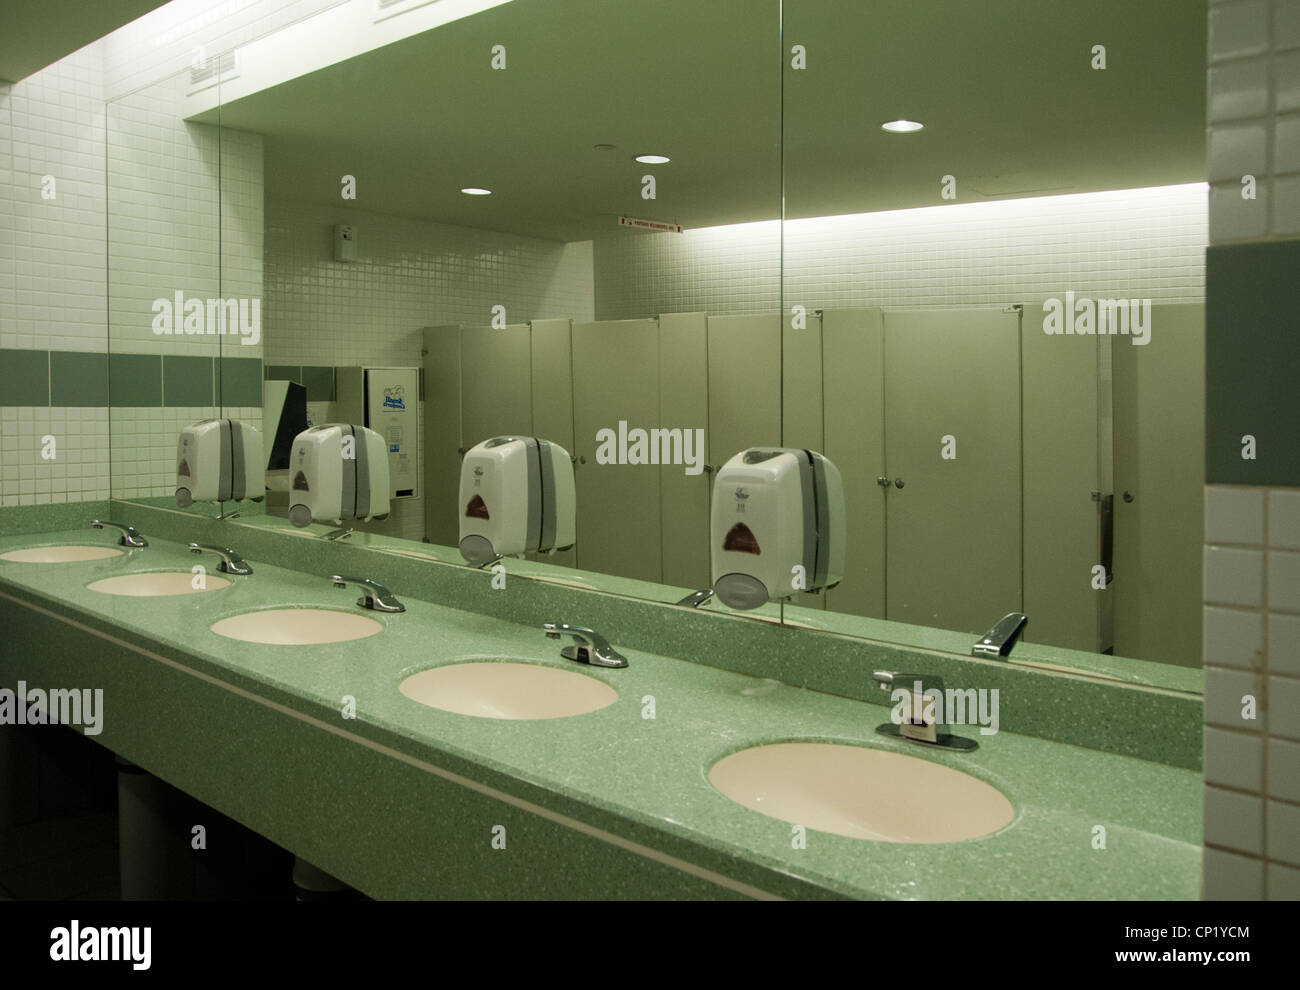 in which with the wellness any use enter cleanest that is do stalls health only stall should shutterstockwhen bathroom one you marcel d appears choice this public typically derweduwen a faced select